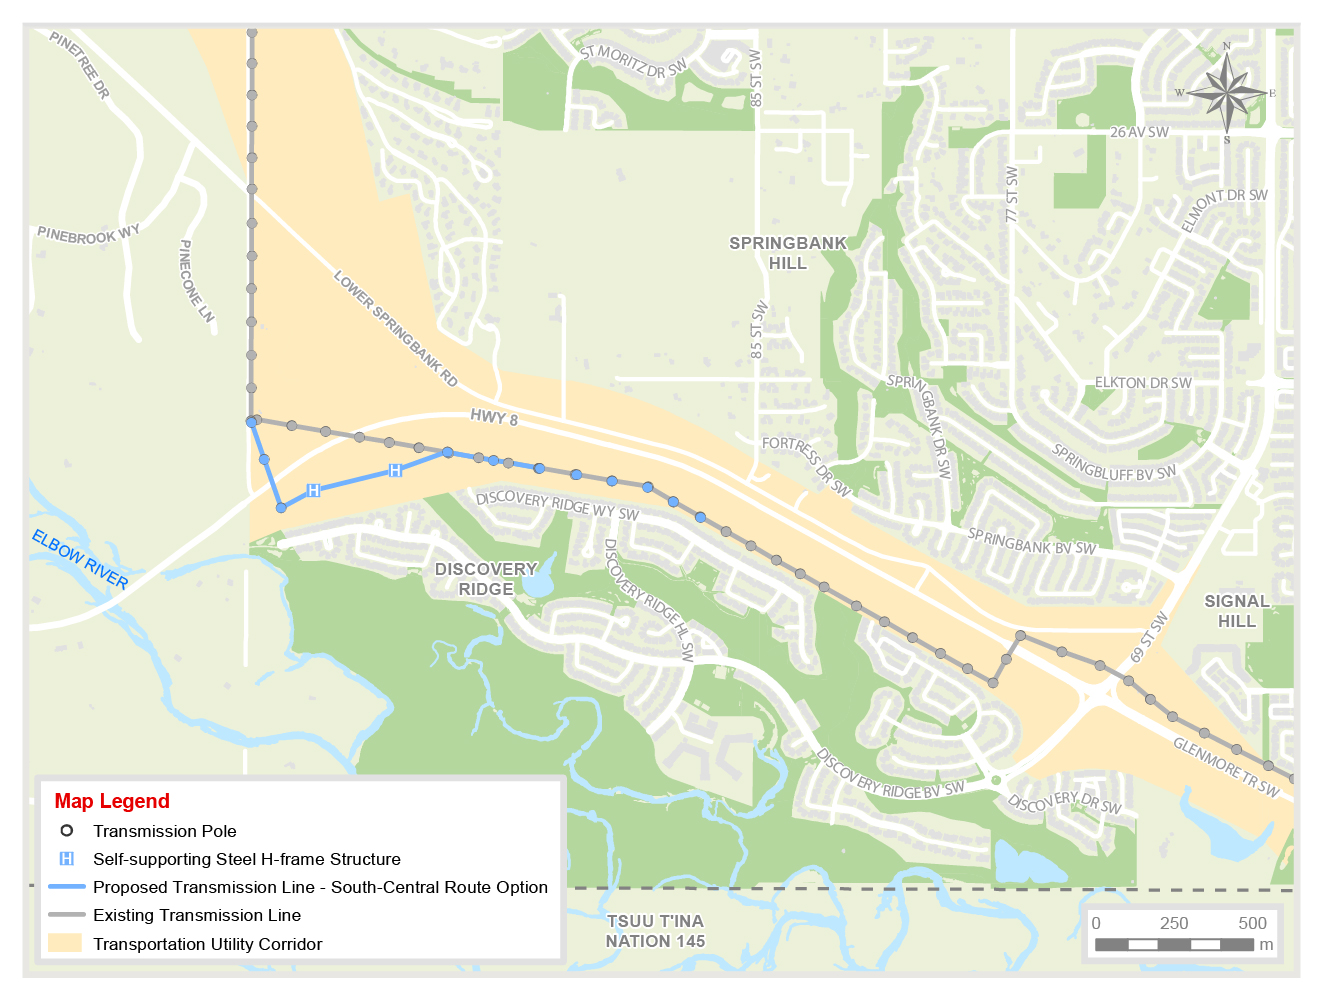 Highway 8 South Central transmission line alignment